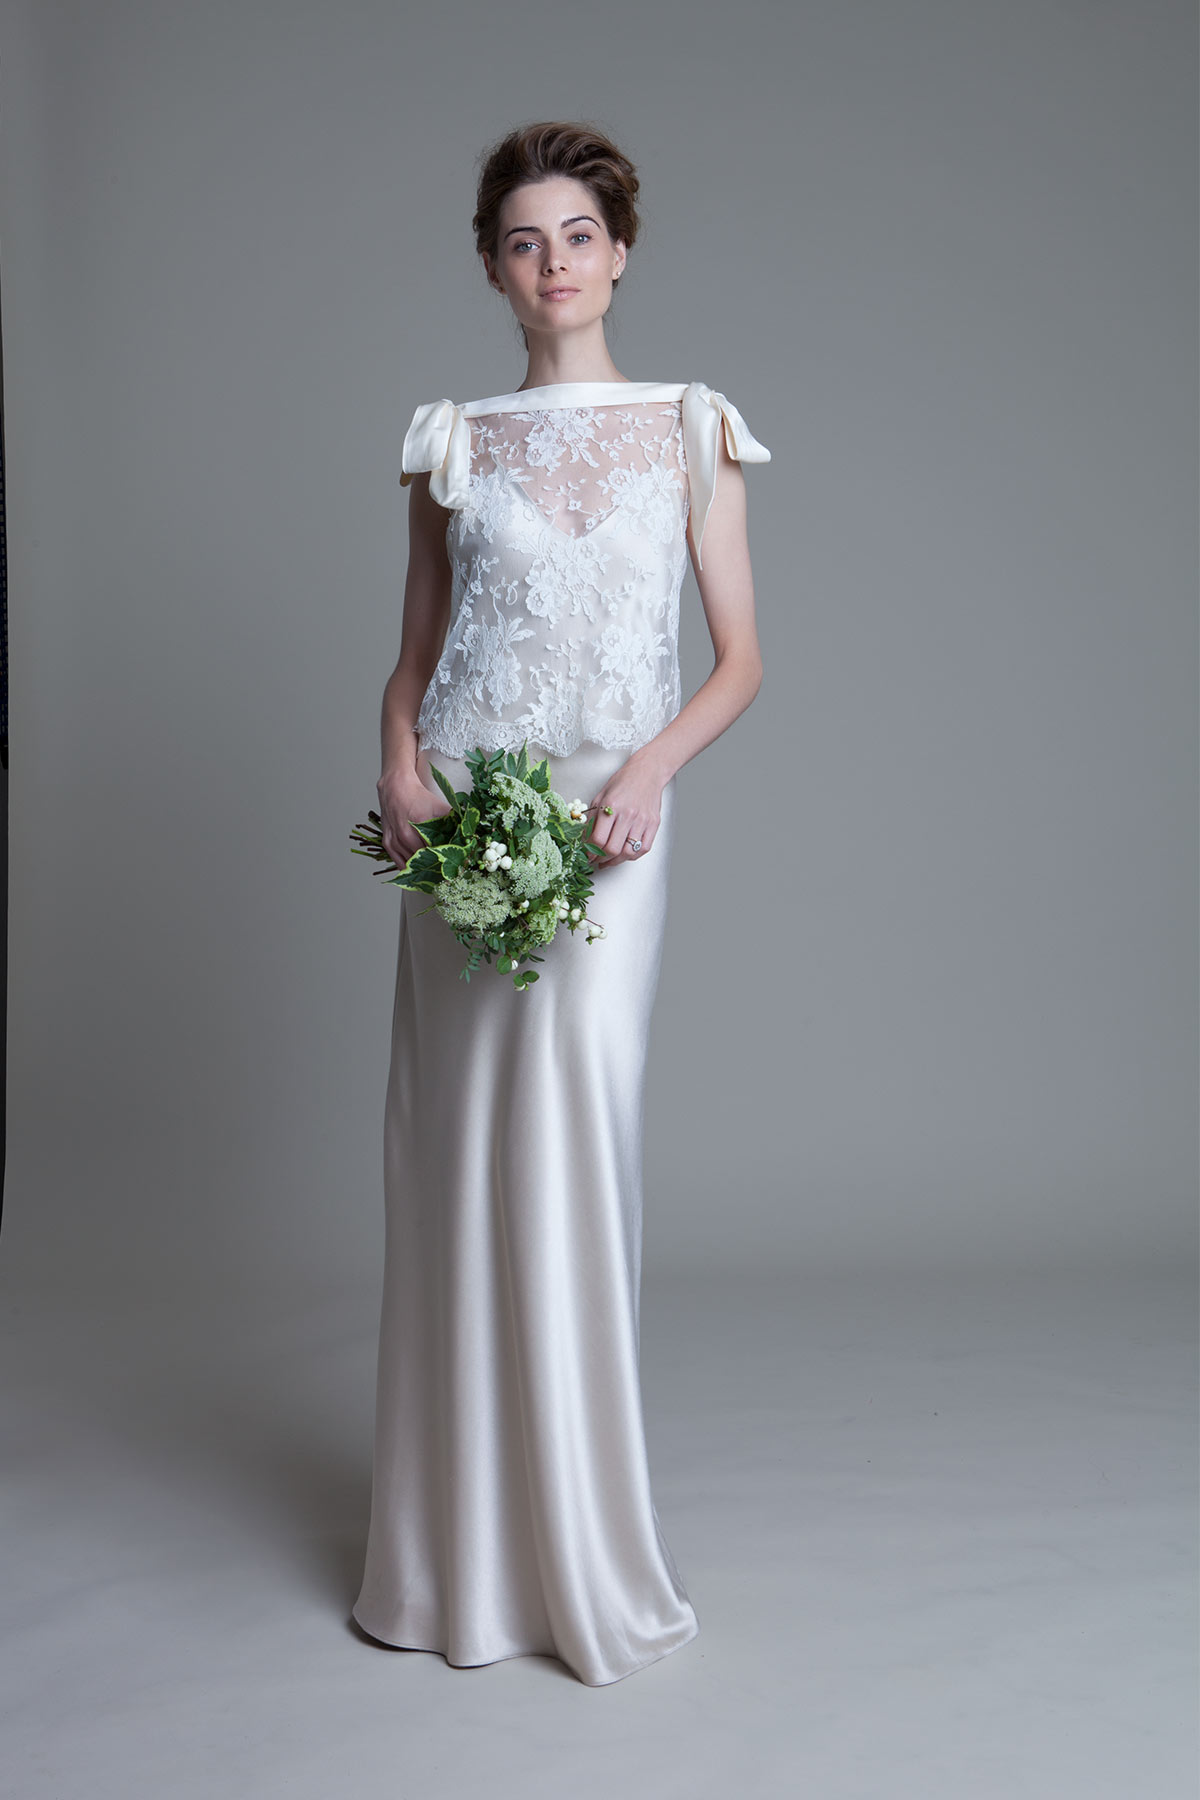 Irene french lace top with blush Iris slip wedding dress by Halfpenny London